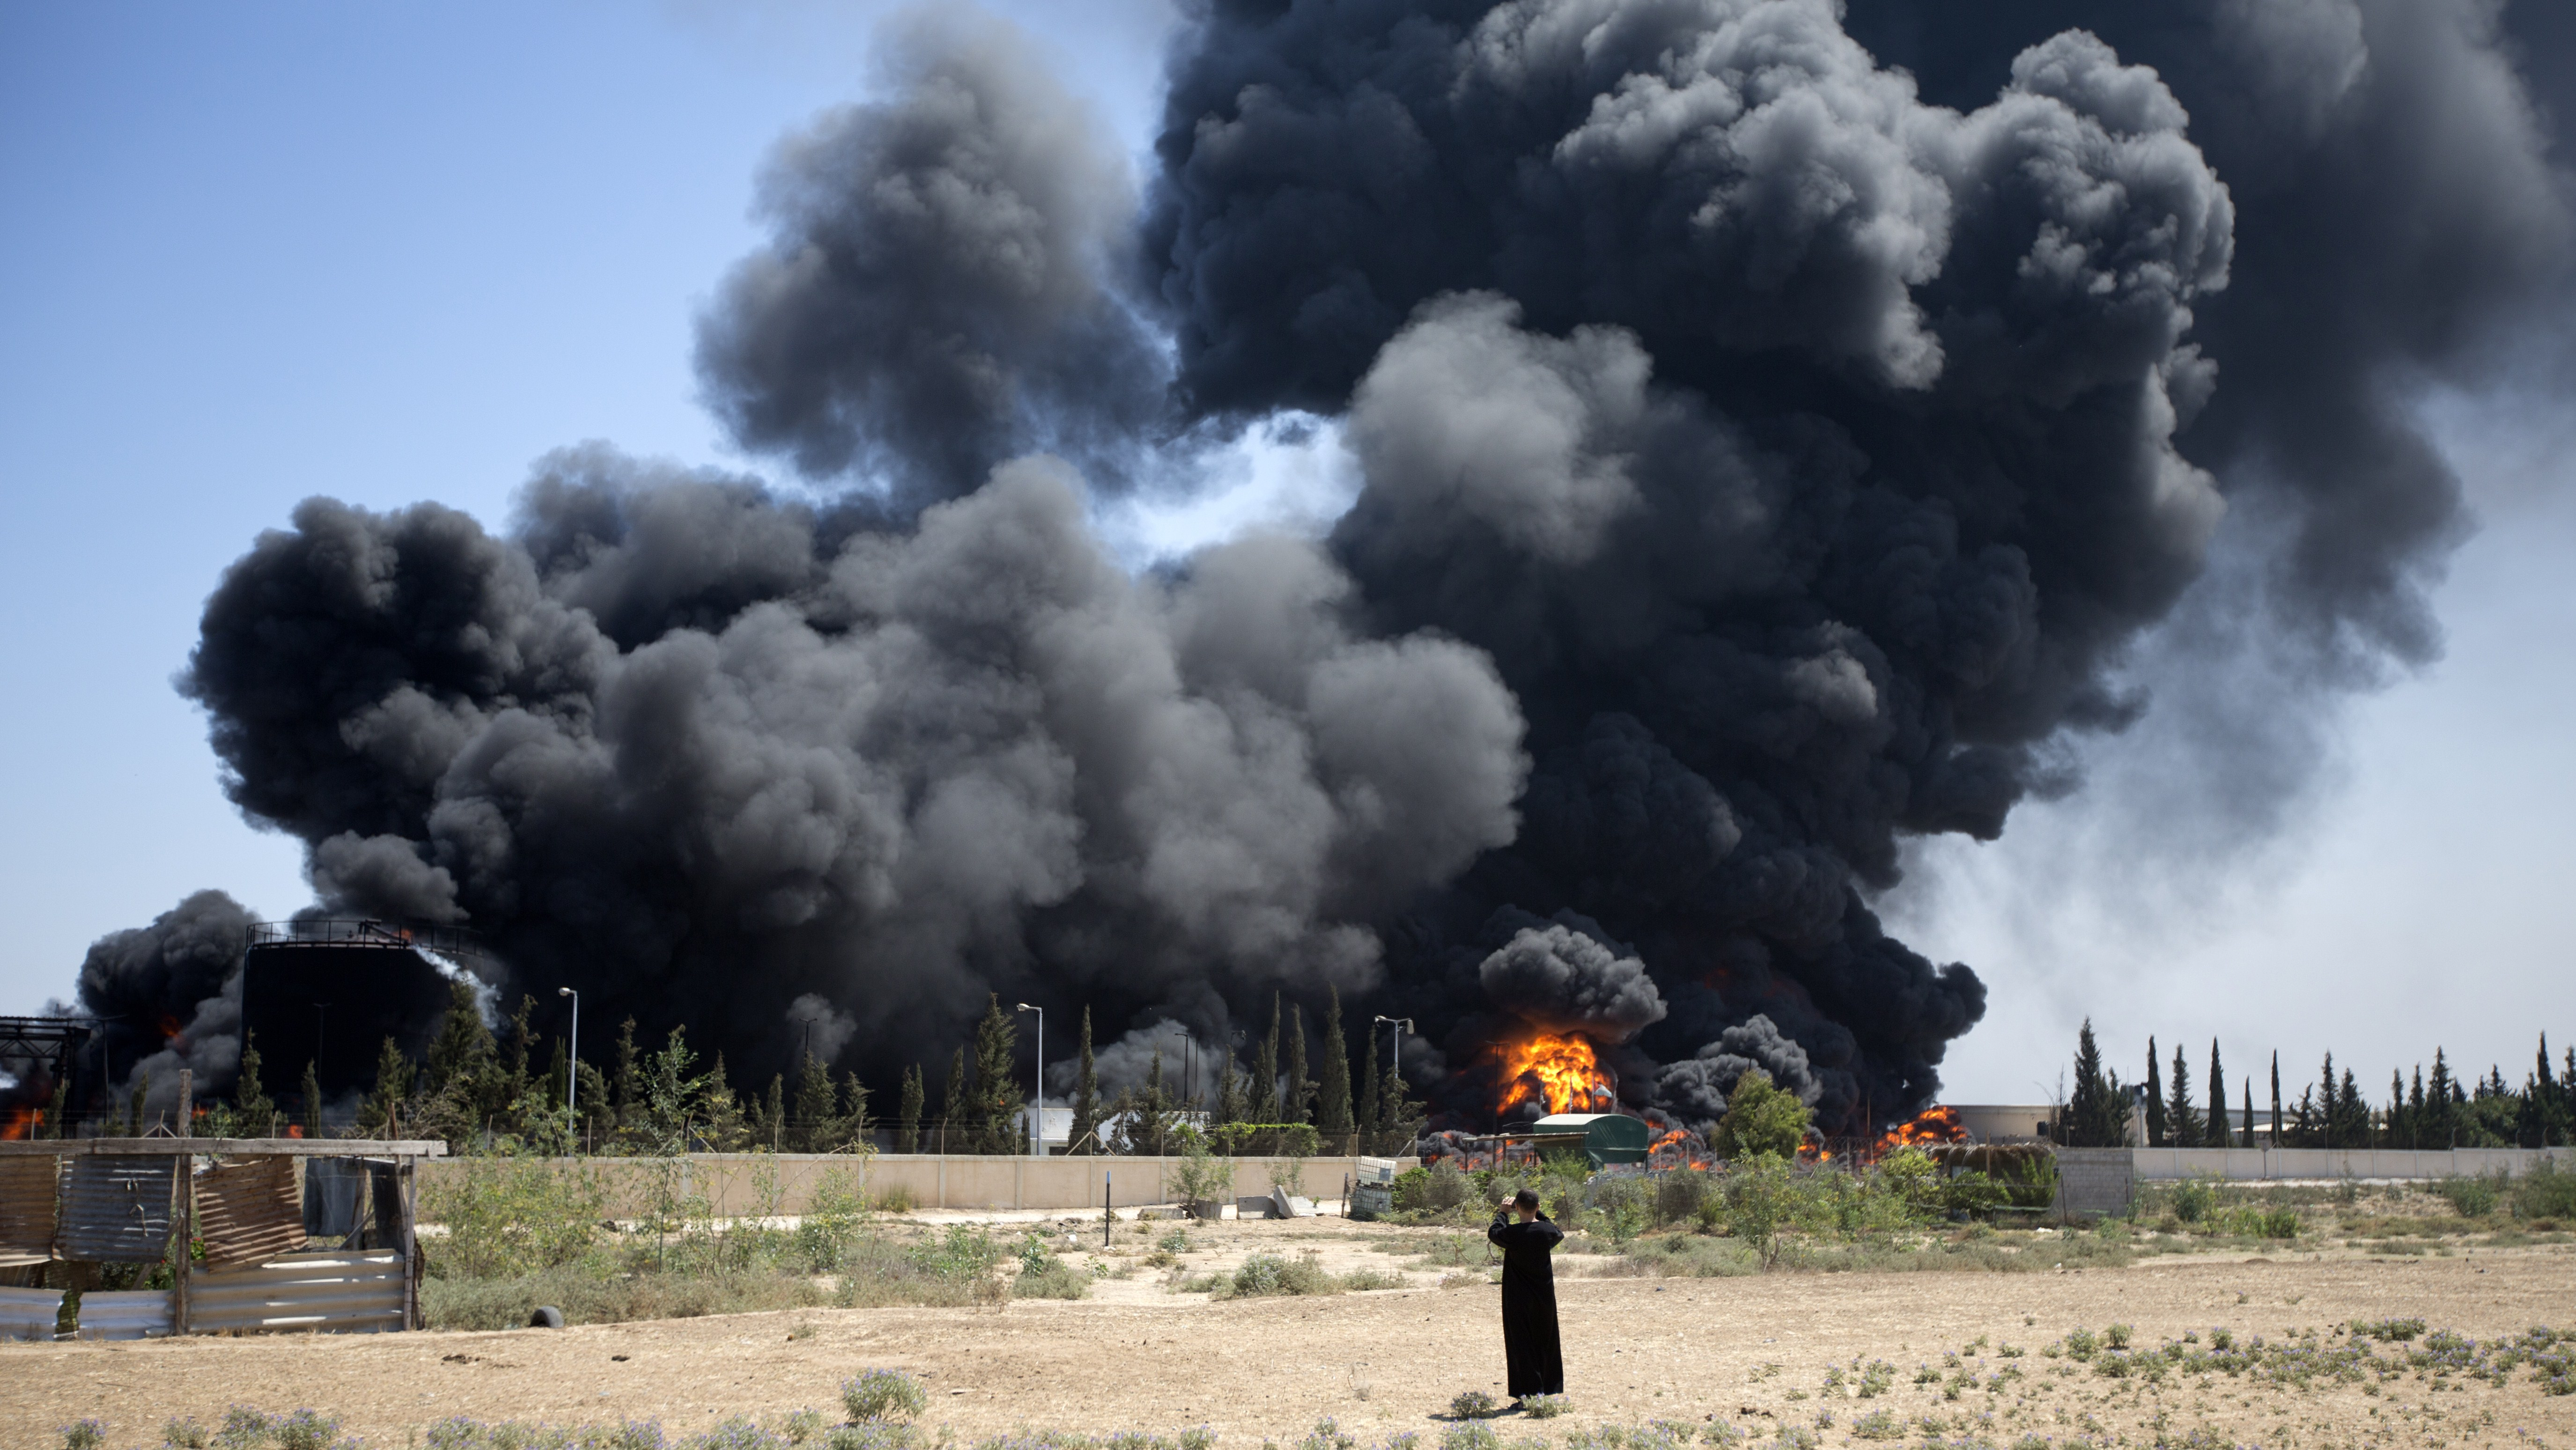 A Palestinian man stands looking as flames engulf the fuel tanks of the only power plant supplying electricity to the Gaza Strip after it was hit by overnight Israeli shelling, on July 29, 2014, in the south of Gaza City.